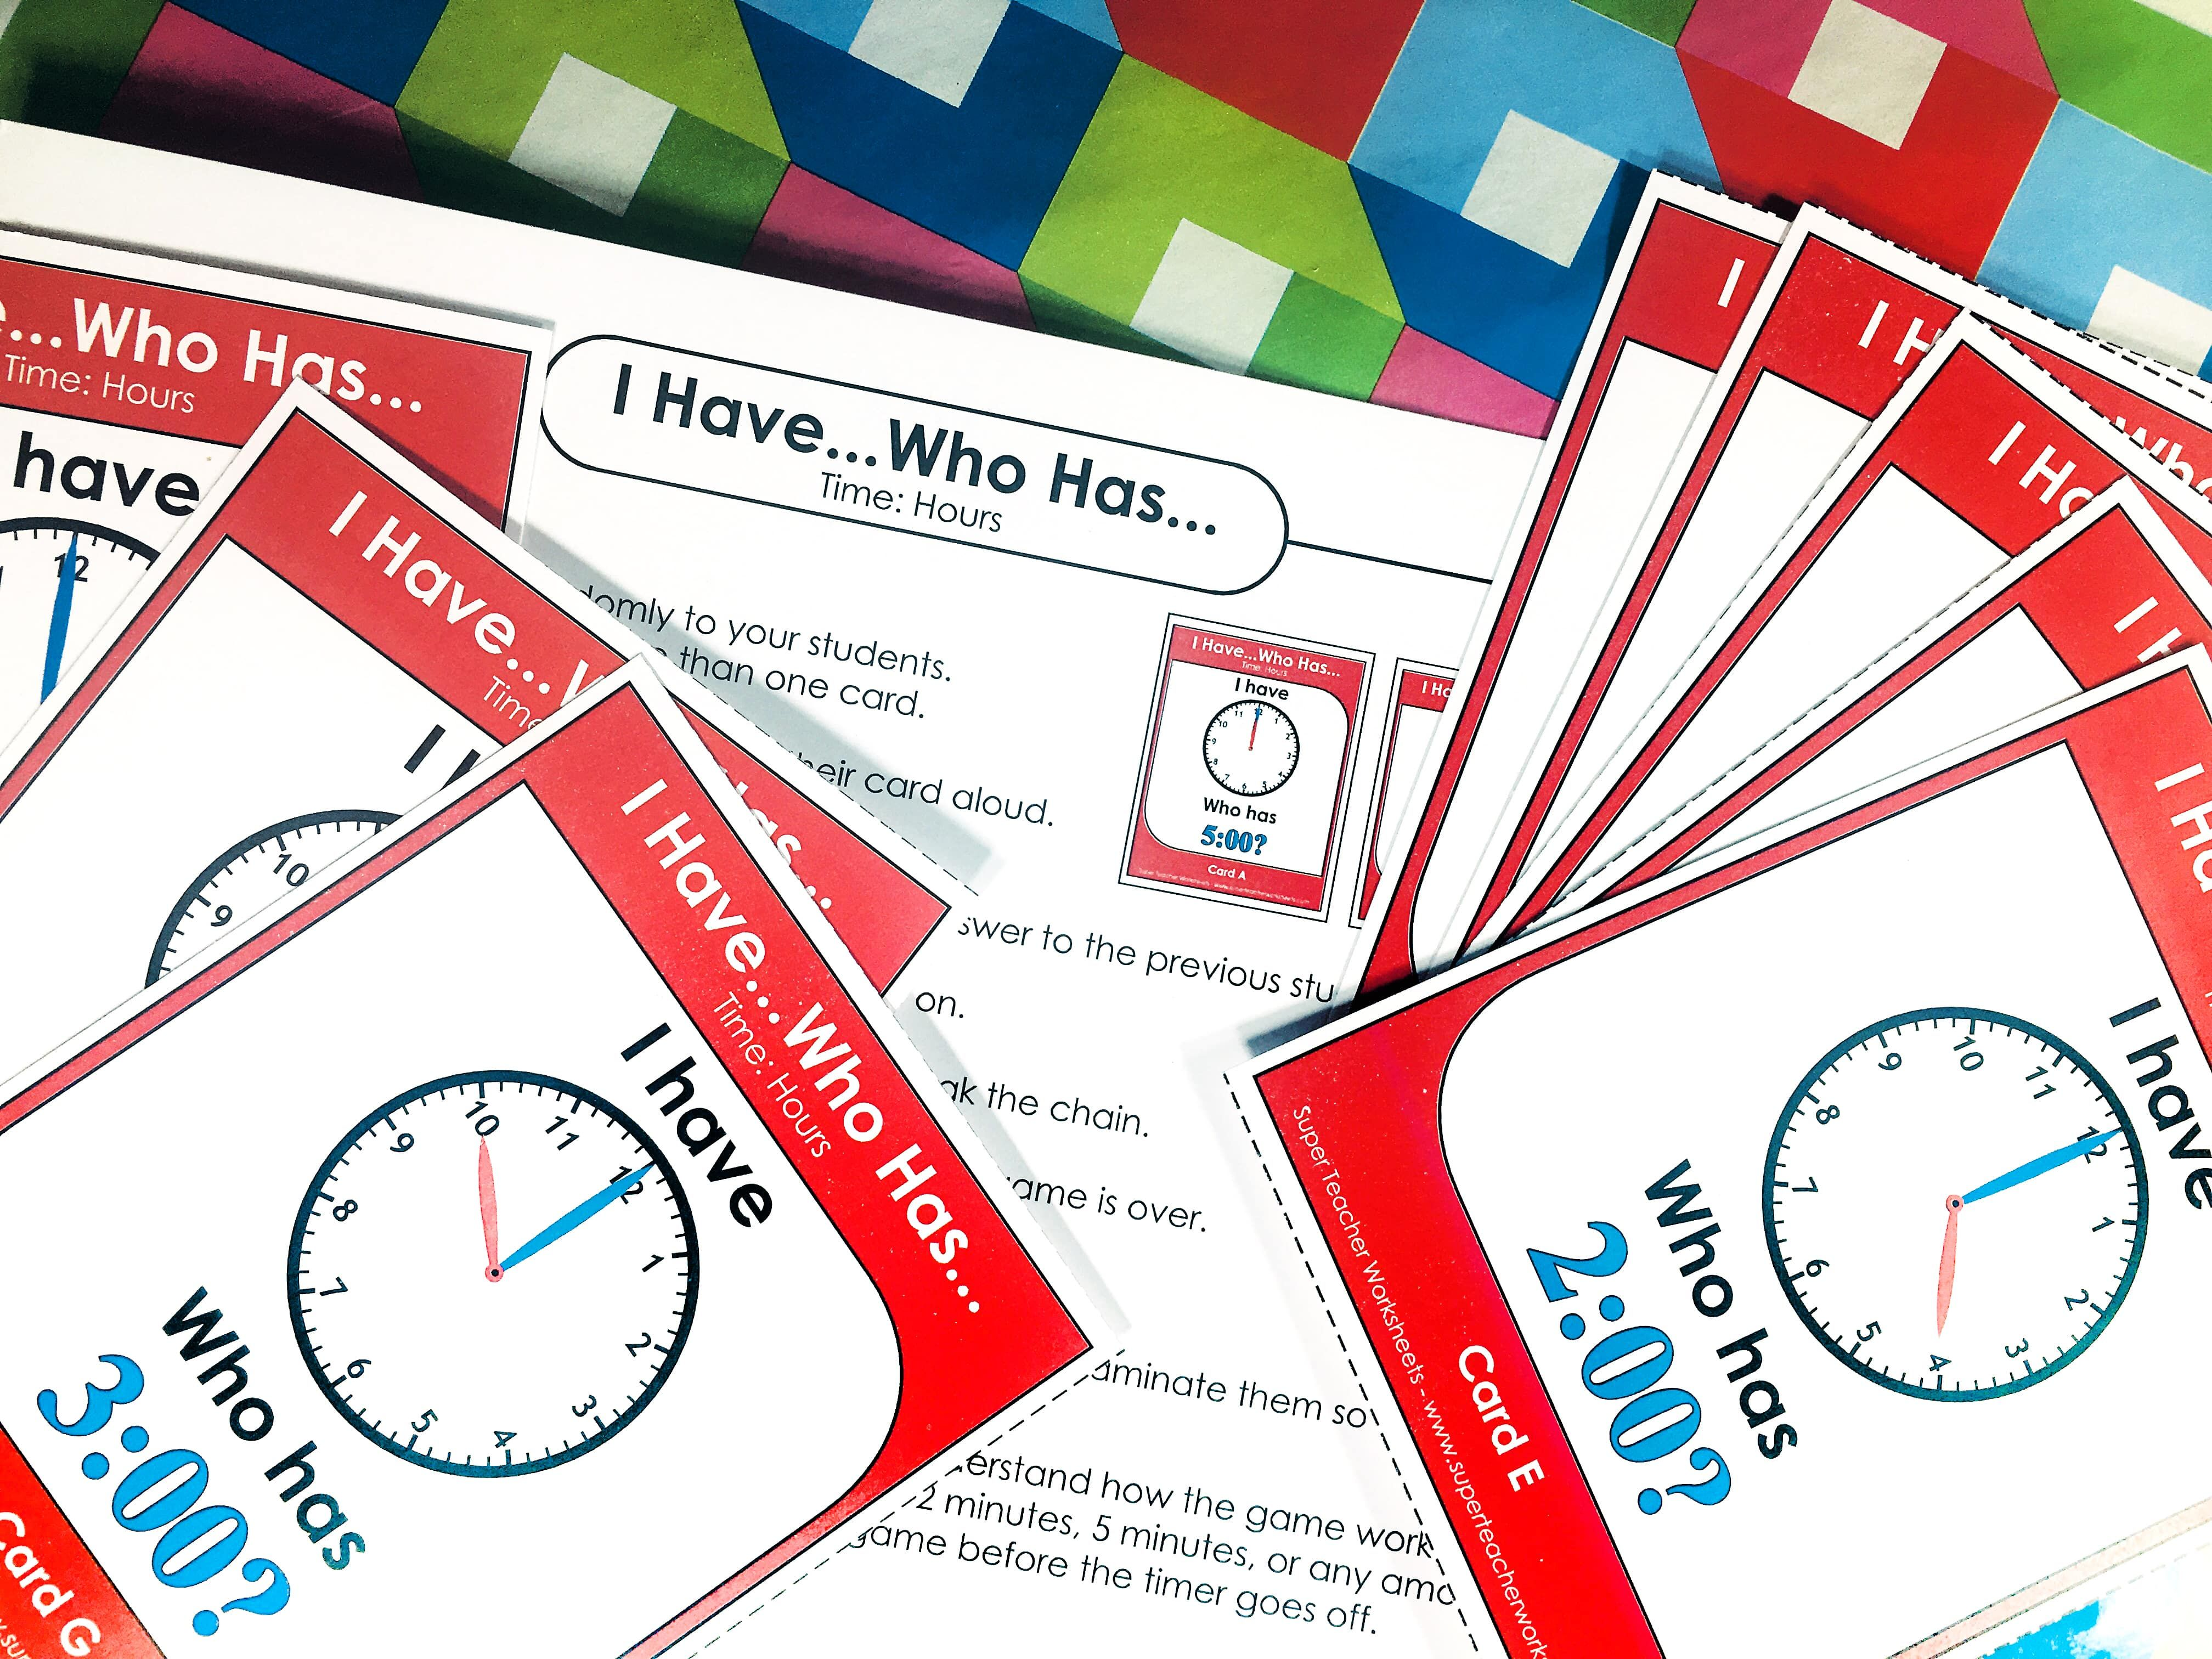 Try Out I Have Who Has Card Games From Super Teacher Worksheets It S A Fun Card Game For Your Whole Cl Super Teacher Worksheets Fun Card Games Card Games [ 3024 x 4032 Pixel ]